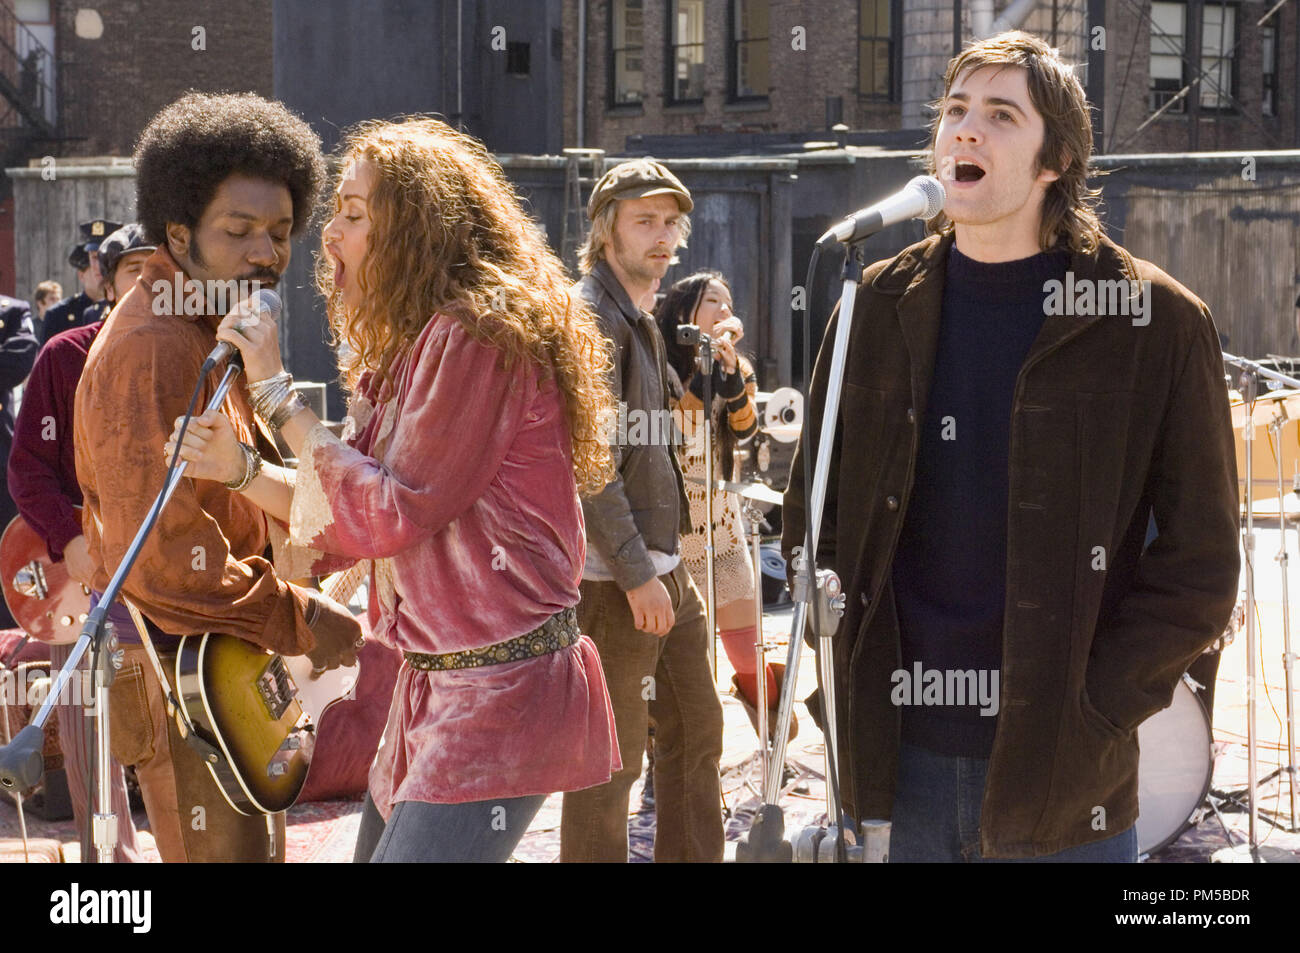 Film Still from 'Across the Universe' Martin Luther, Dana Fuchs, Joe Anderson, Jim Sturgess © 2007 Revolution Studios Photo Credit: Abbot Genser    File Reference # 30738593THA  For Editorial Use Only -  All Rights Reserved - Stock Image